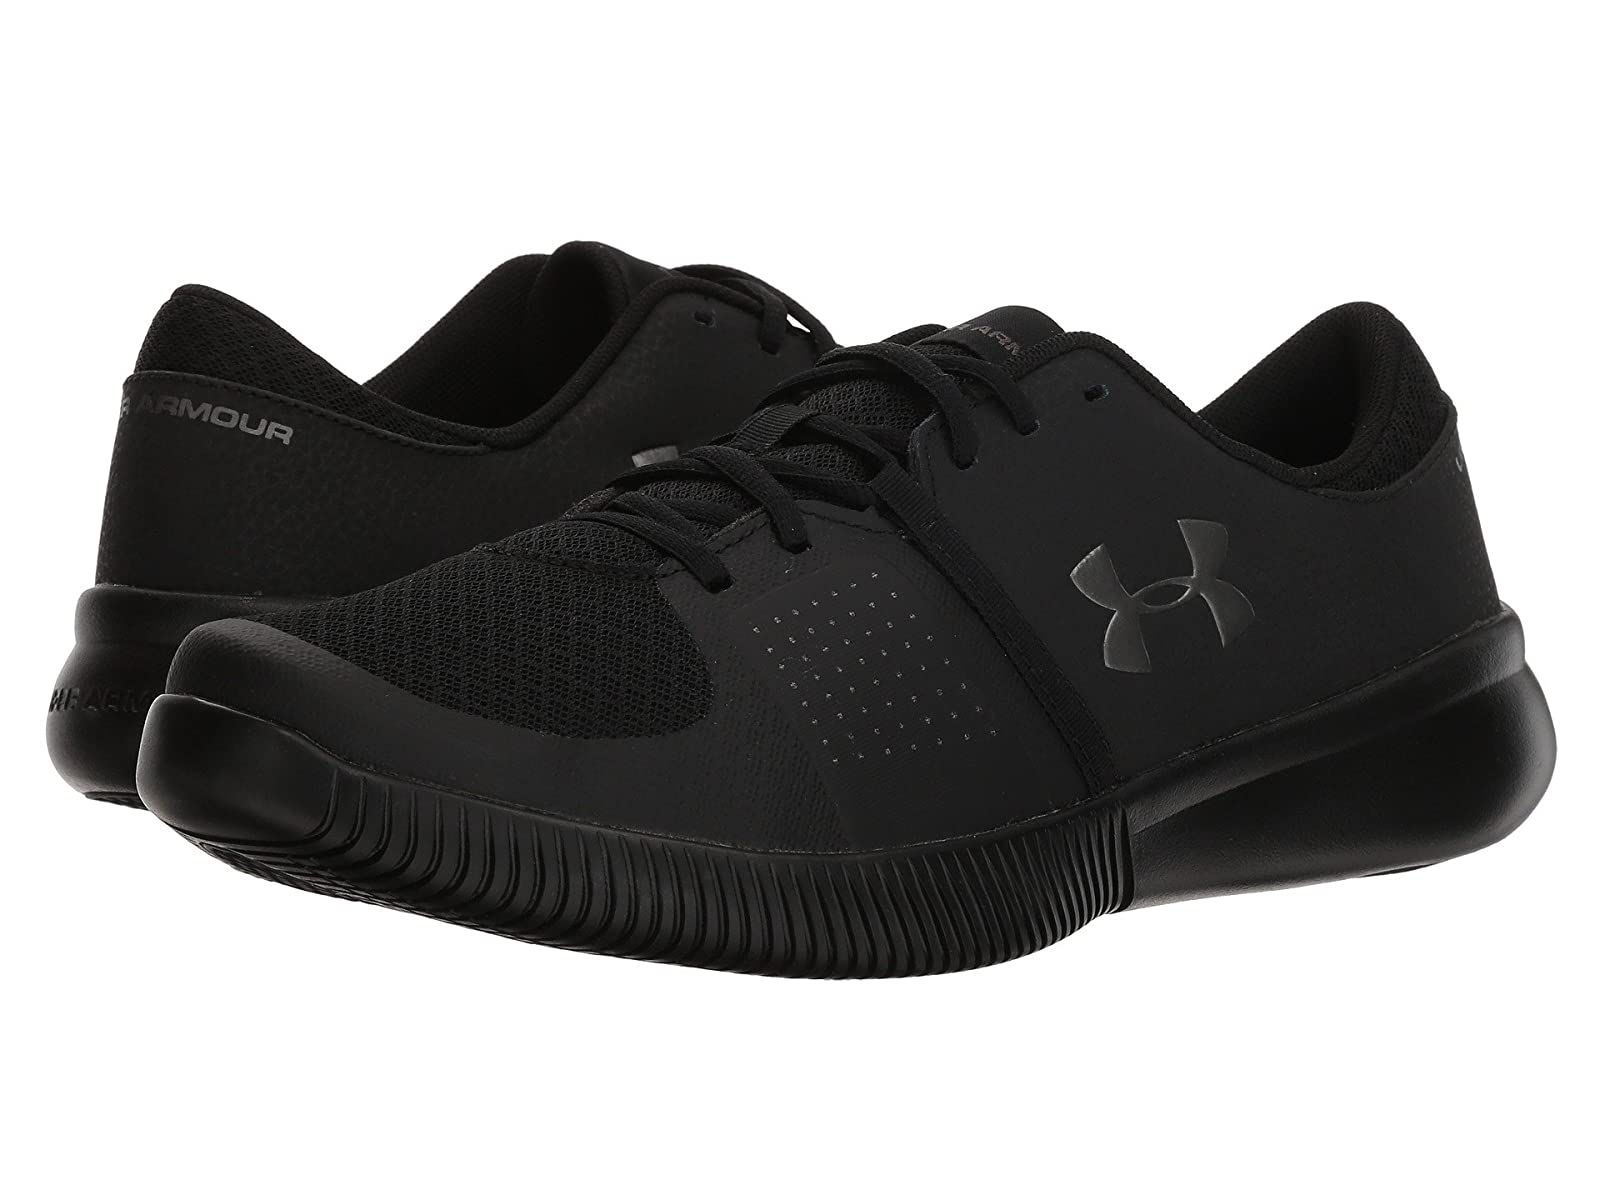 Under Armour UA Zone 3Atmospheric grades have affordable shoes